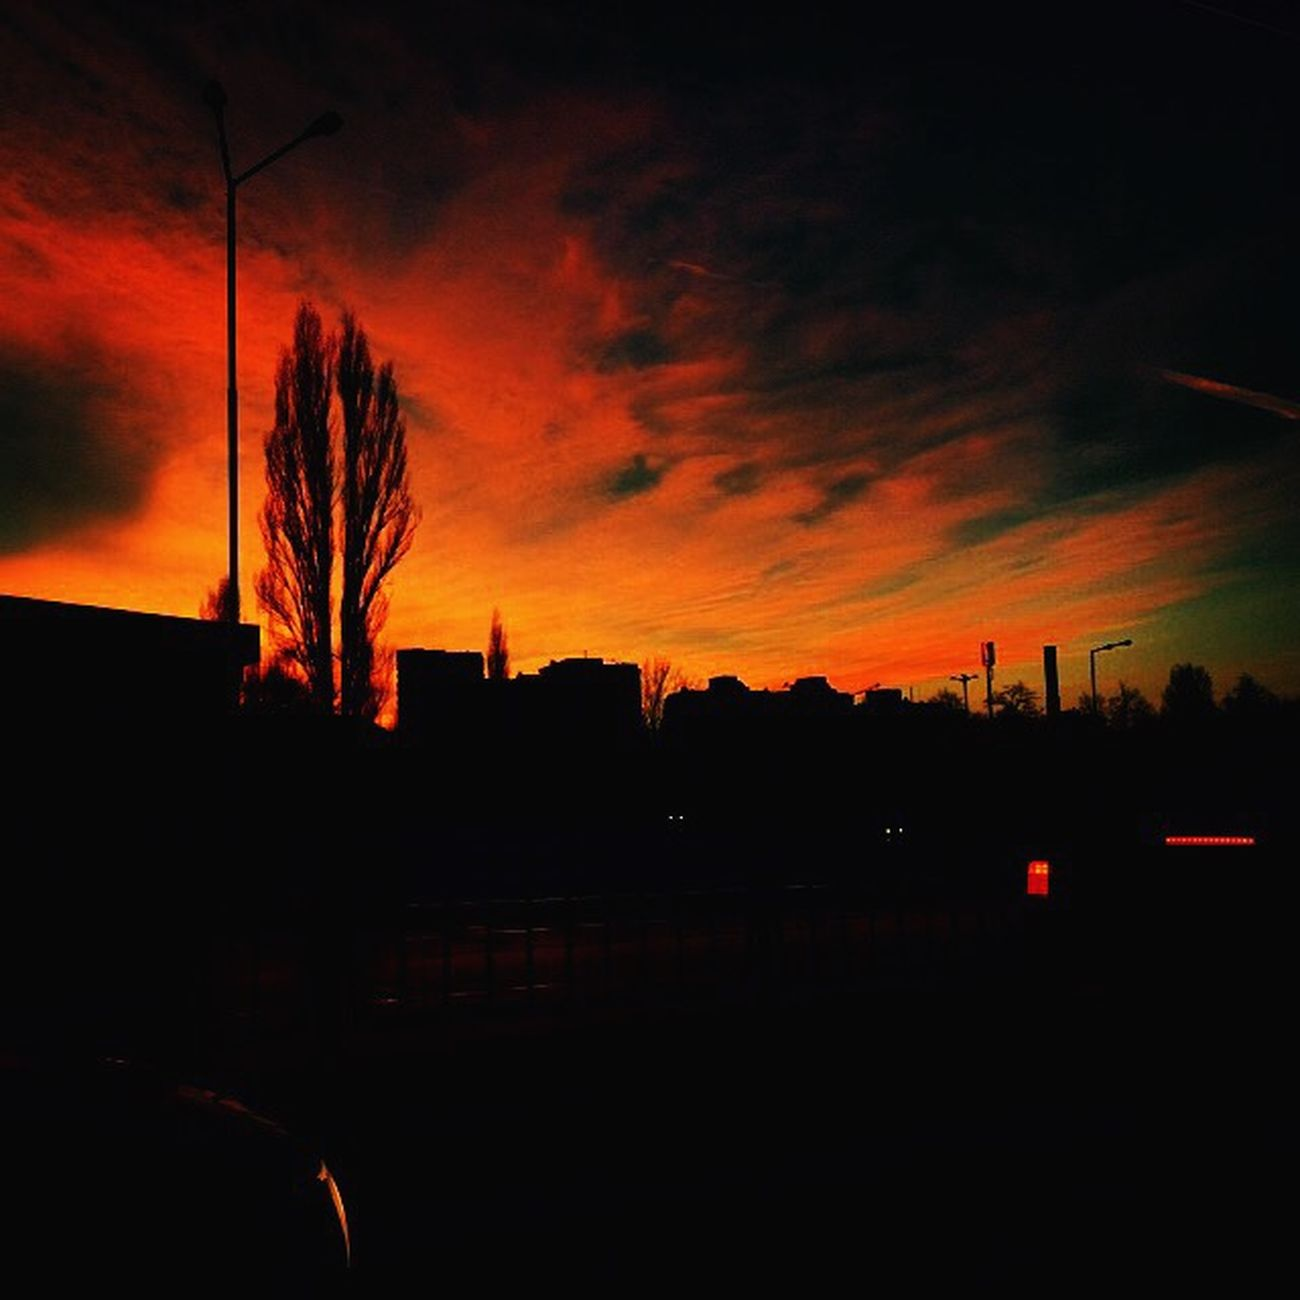 RedSky Sky Collection Clouds And Sky Endoftheworld Discover Your City EyeEm Nature Lover Check This Out Instasunset Sunset